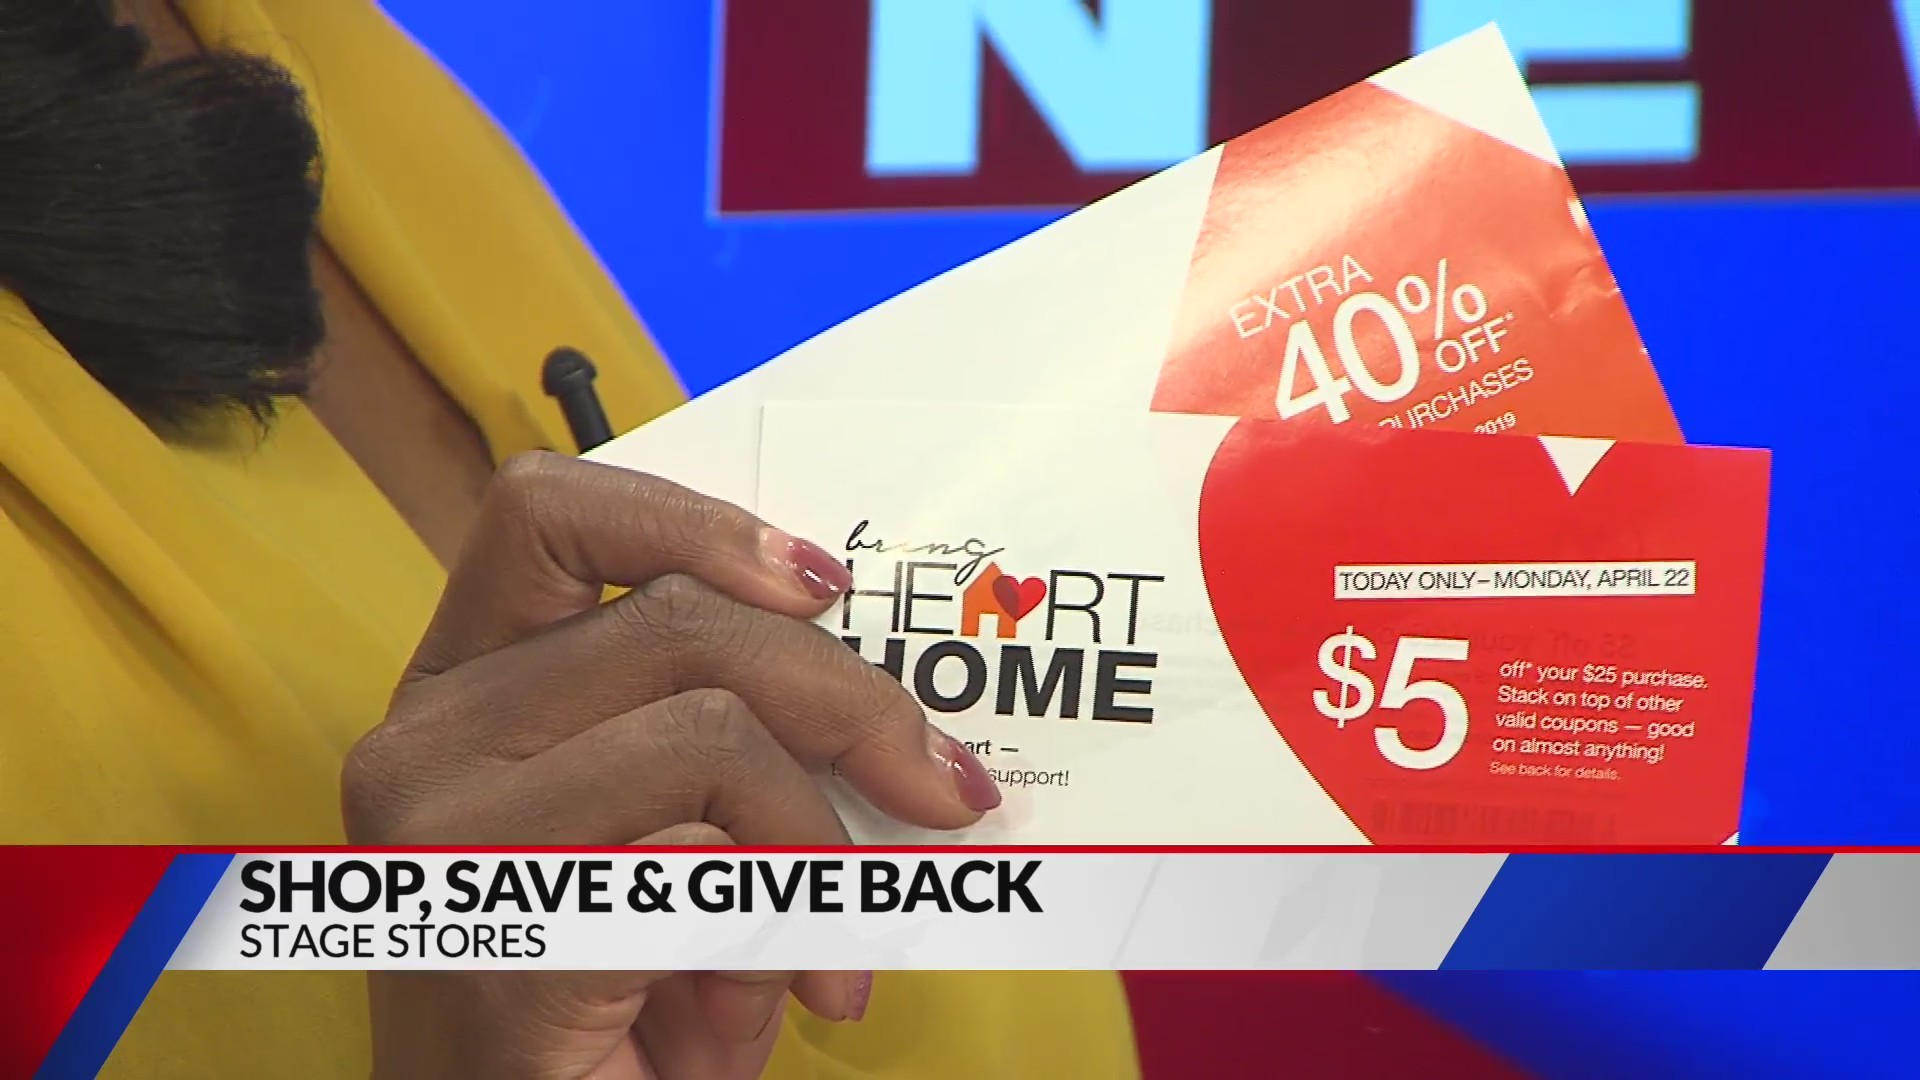 Shop and save at Stage Stores while giving to Heart Association (Fox)